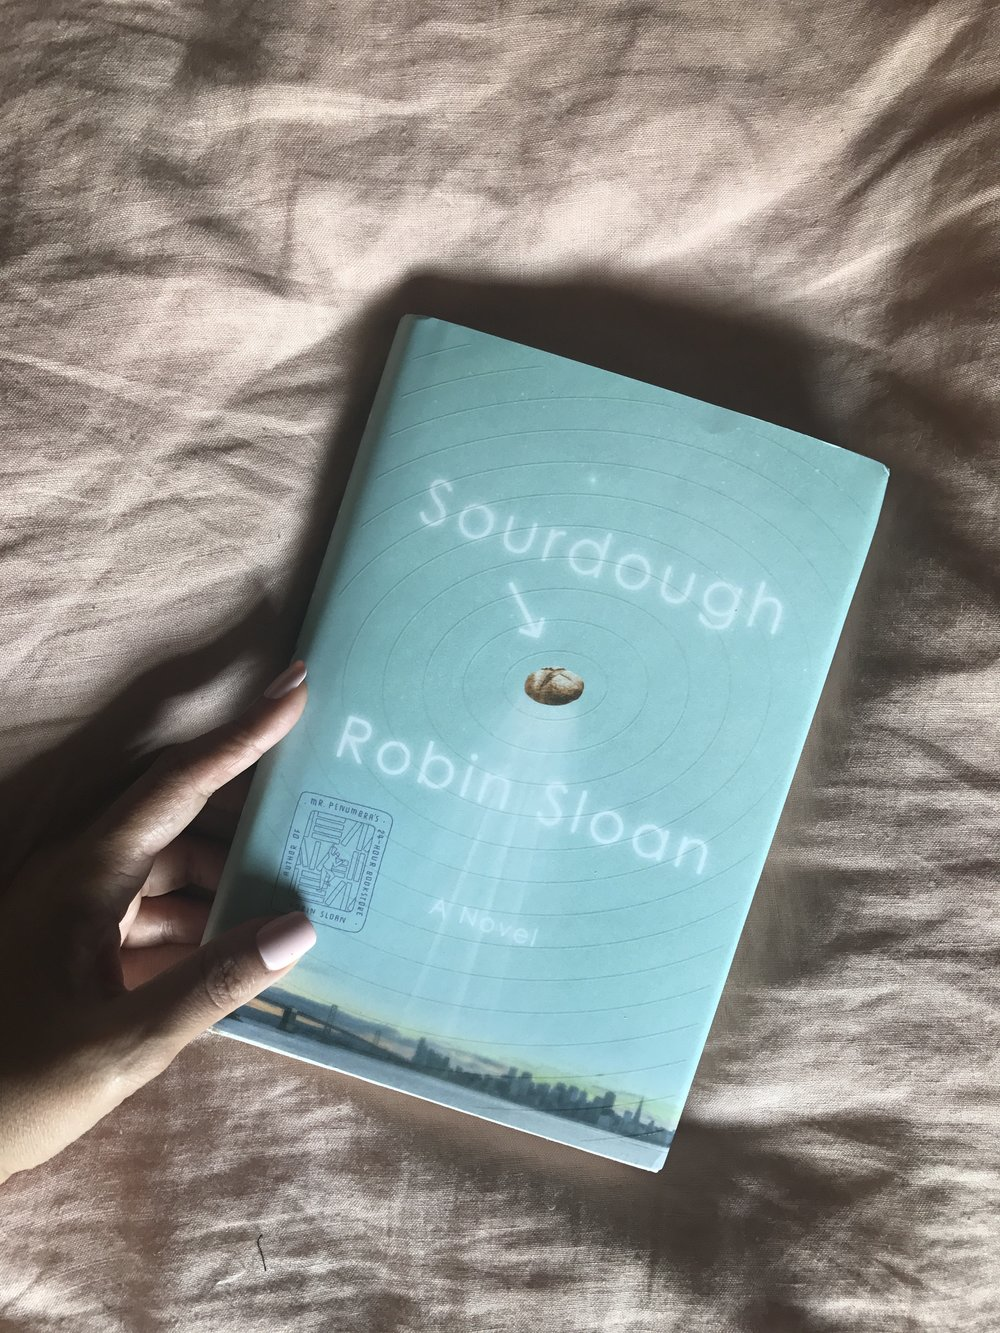 Sourdough , a novel by Robin Sloan